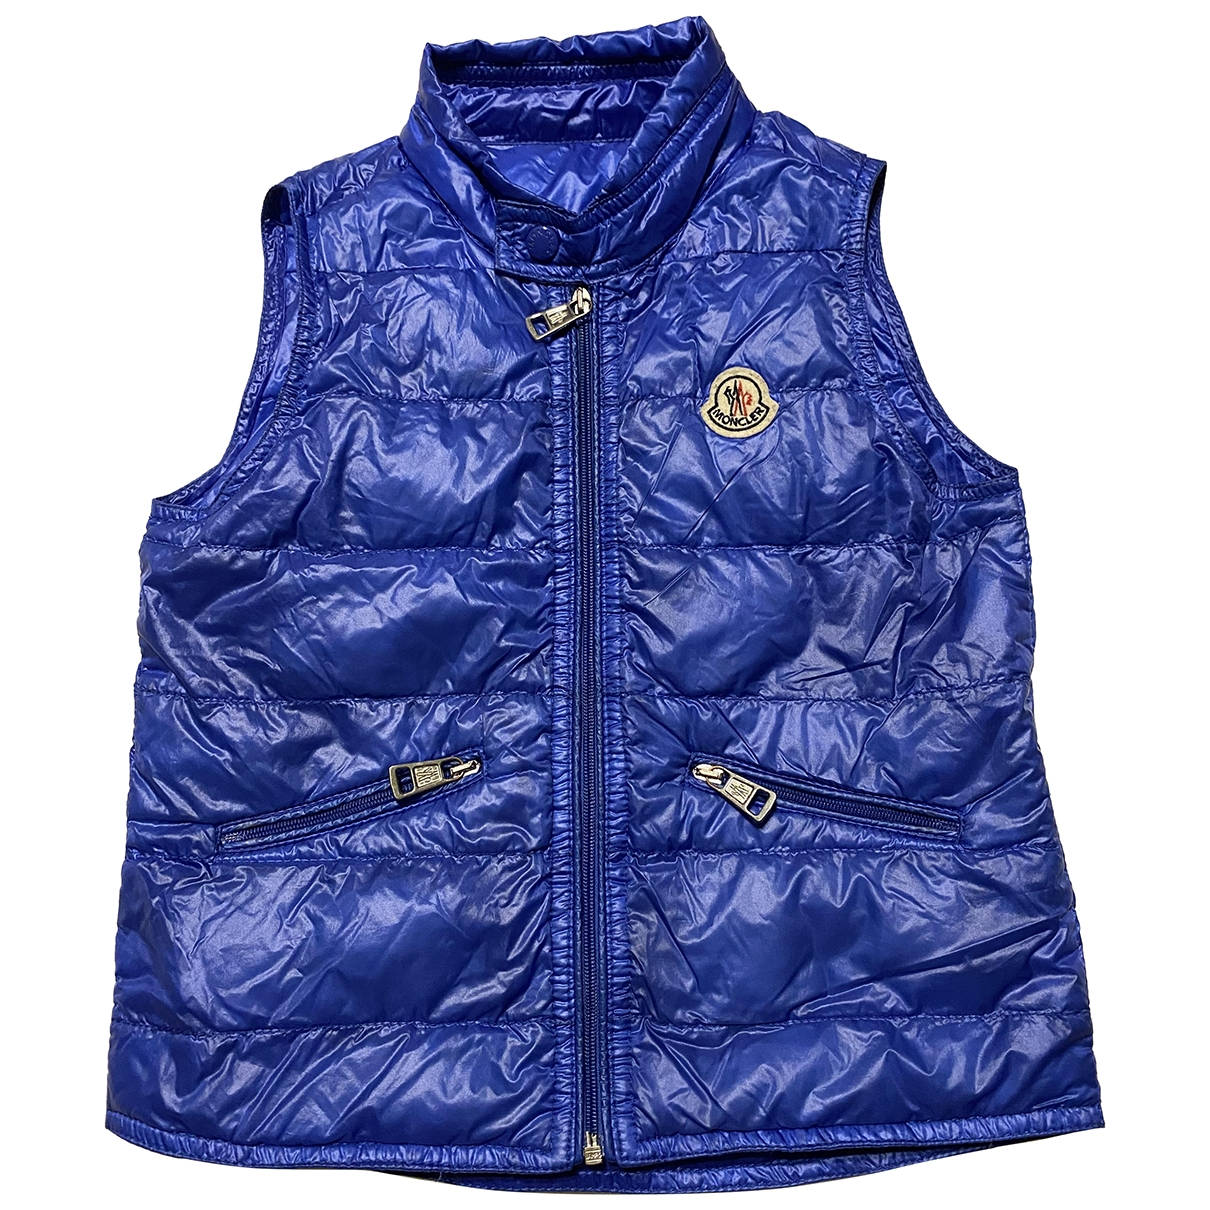 Moncler \N Blue Knitwear for Kids 3 years - up to 98cm FR